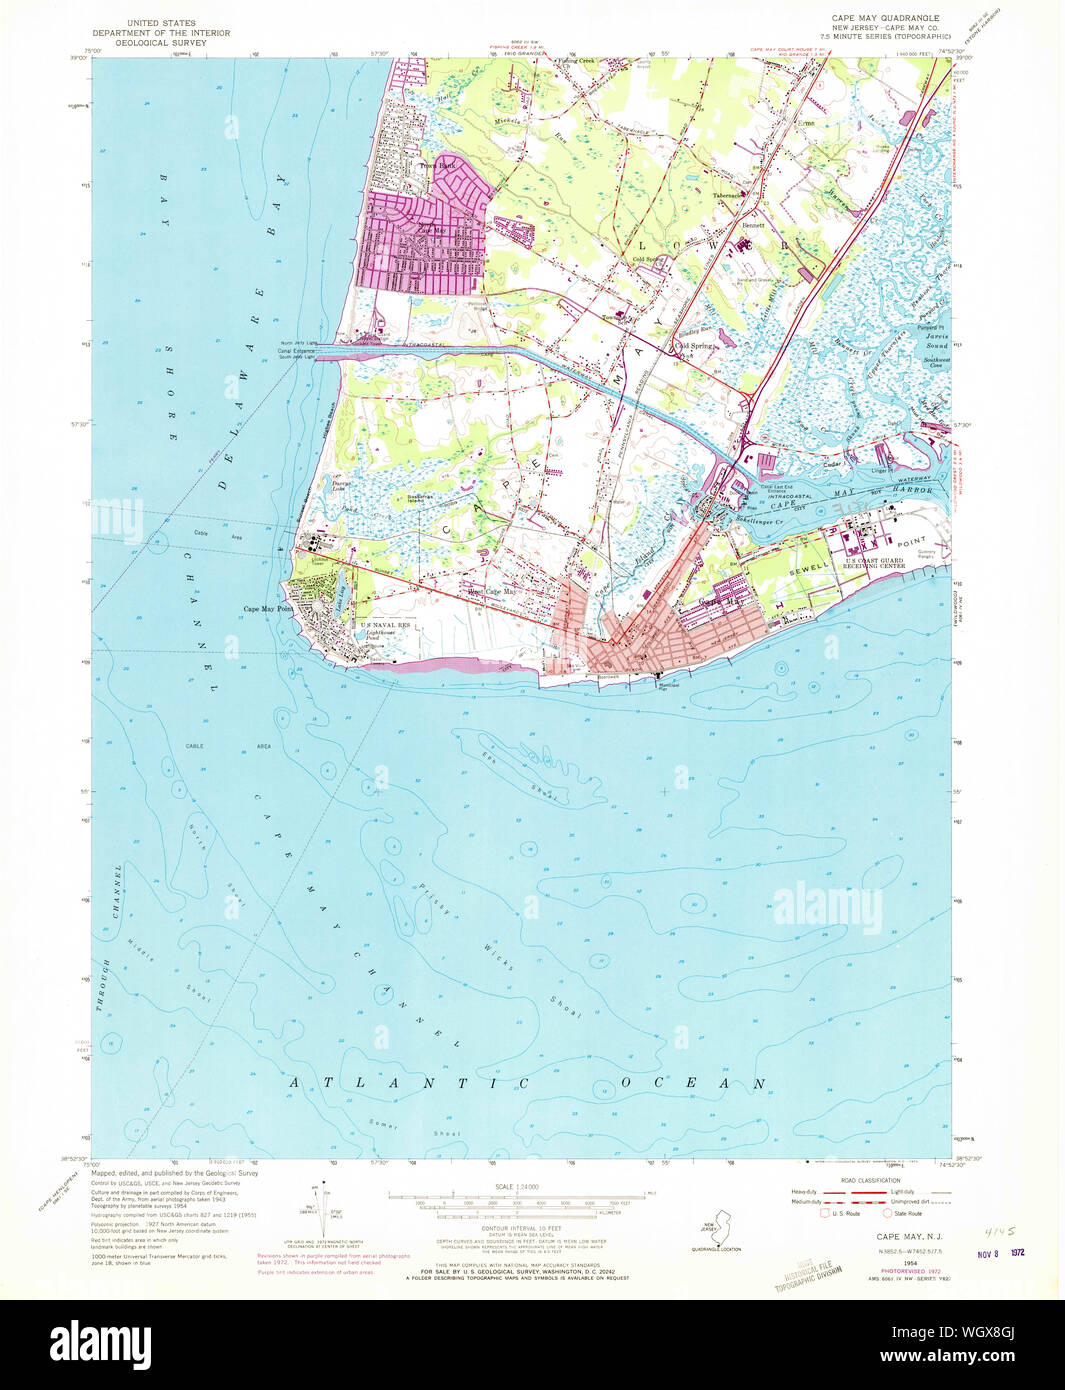 USGS TOPO Map New Jersey NJ Cape May 254254 1954 24000 ... Cape May New Jersey Map on rehoboth beach, jersey shore, long branch, ocean county, cape may lighthouse, town of cape may map, mercer county, leonia new jersey map, cape may beach map, atlantic city, cape may tourist map, cape may county, cape may county herald, town bank cape may map, cape may downtown map, cape may city map, southern new jersey map, stone harbor, sea isle city, delaware bay, south jersey, asbury park, rio grande, belmar new jersey map, cape may street map, cumberland county new jersey map, cape may diamonds, cape may sound, ocean city, lawrence township new jersey map, strathmere new jersey map, allentown new jersey map, cape may national wildlife refuge map, cape may county map, cape may nj,